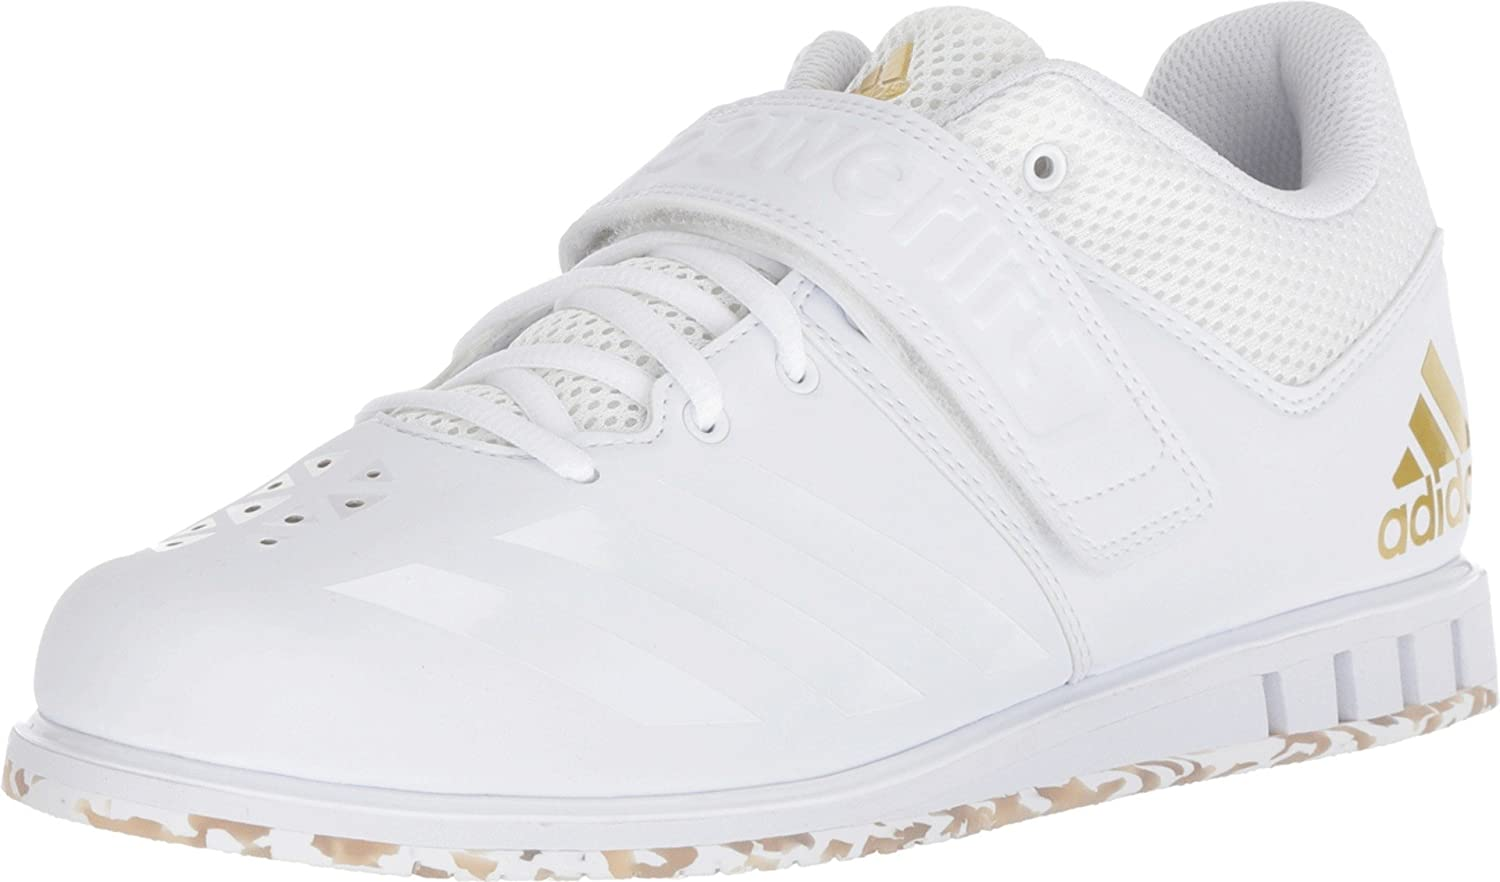 Blanc blanc or Metallic adidasPowerlift.3.1 - Powerlift.3.1 Homme 47 EU